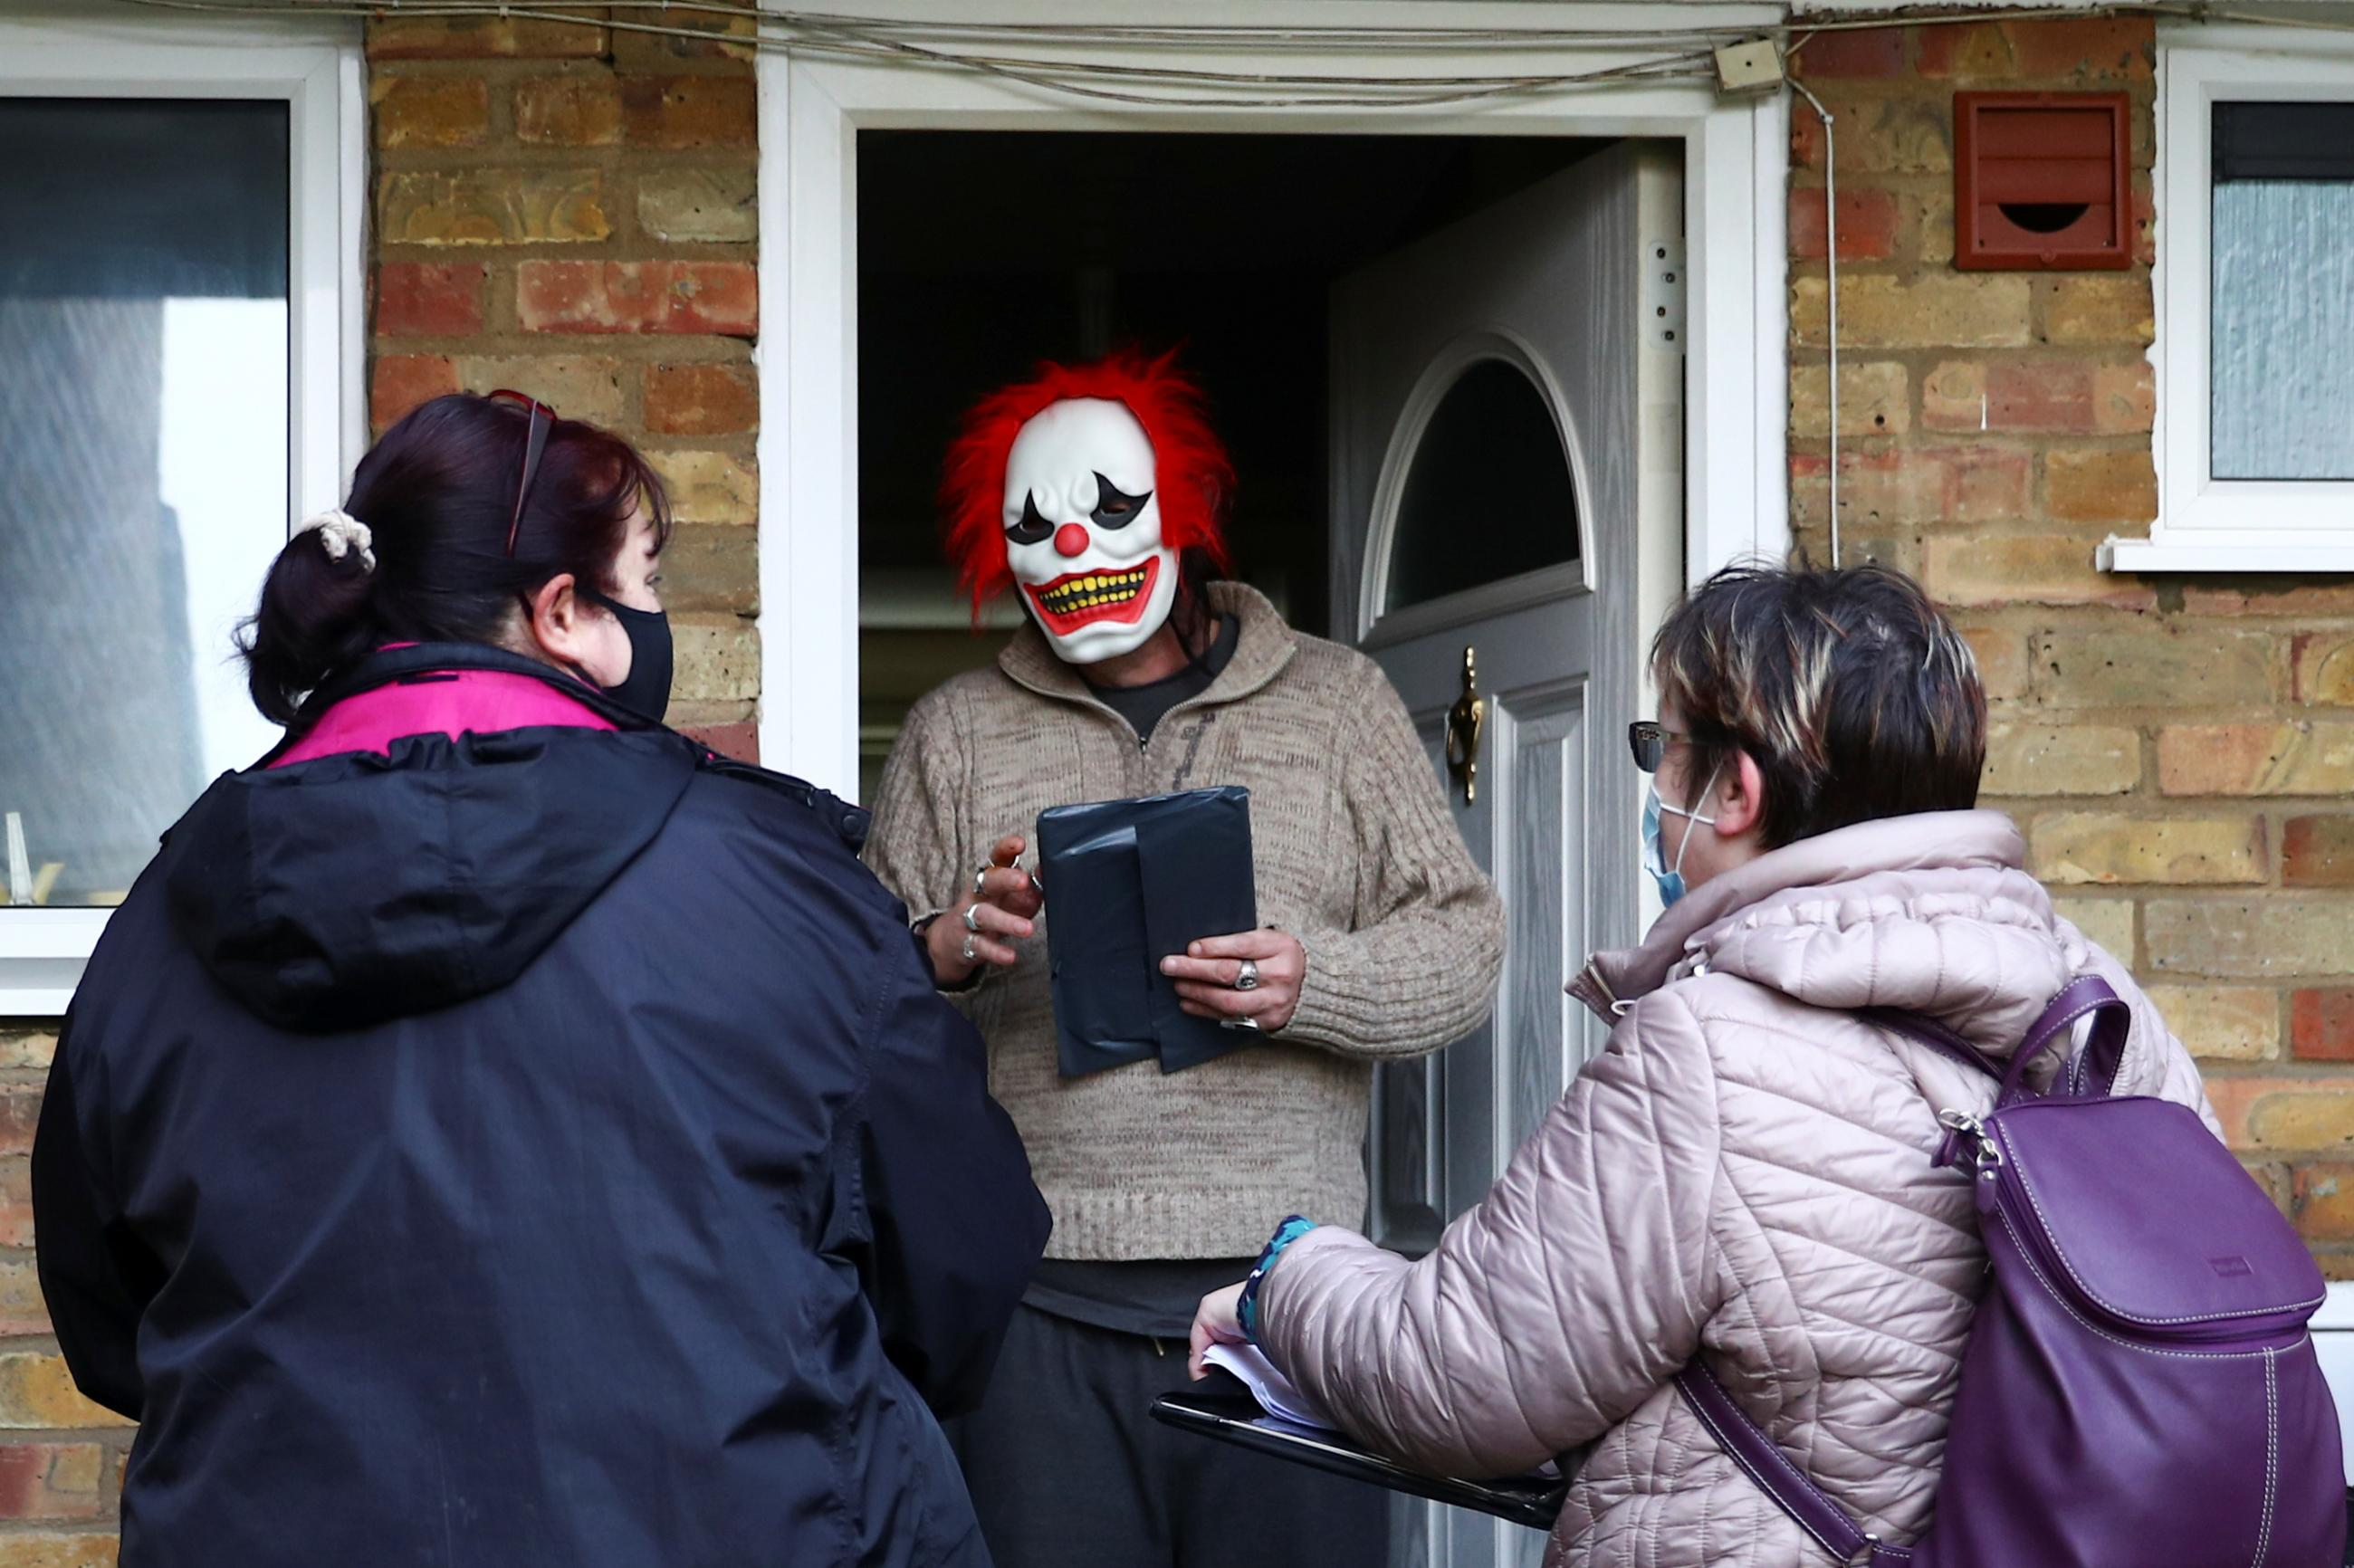 Volunteers hand out the COVID-19 home test kits to residents, in Goldsworth and St Johns, amid the outbreak of coronavirus disease (COVID-19) in Woking, Britain, February 2, 2021.